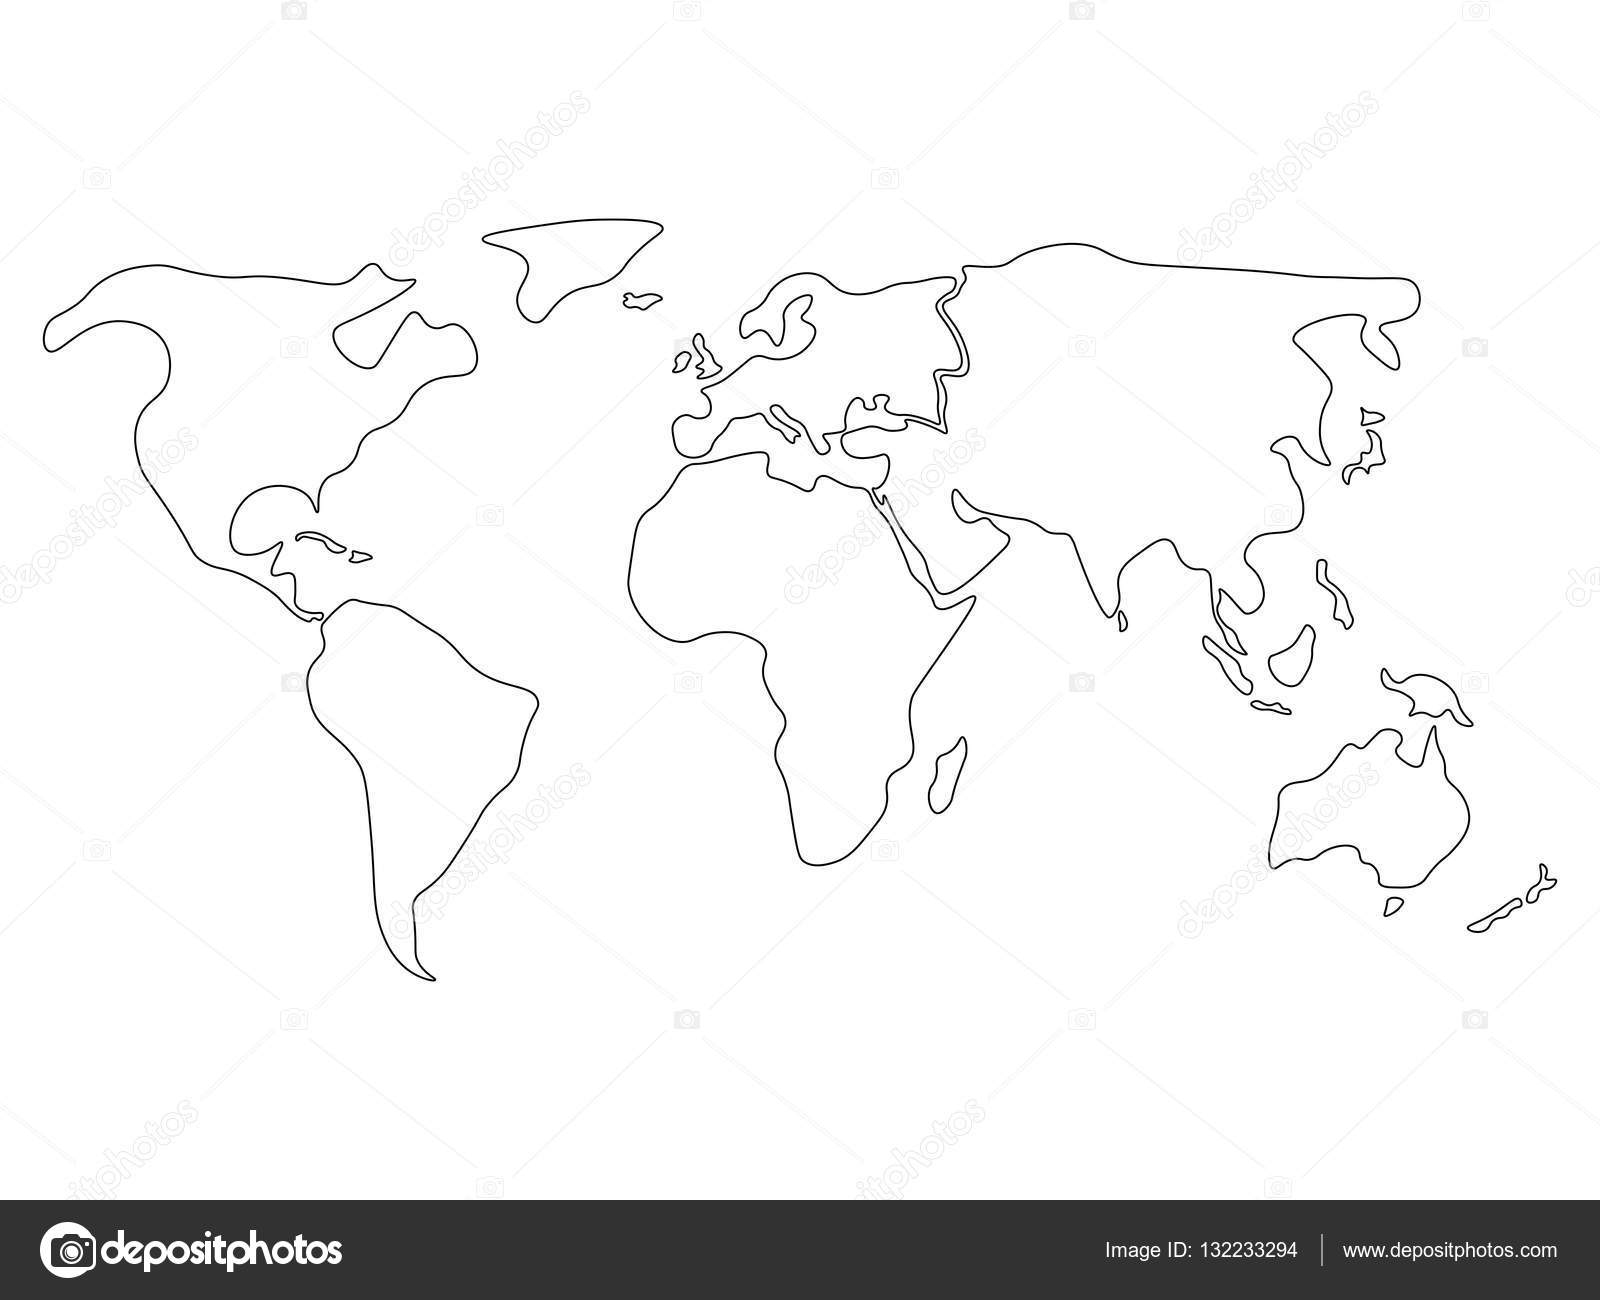 Simplified world map divided to continents simple black outline world map divided to six continents in black north america south america africa europe asia and australia oceania simplified black outline of blank gumiabroncs Images